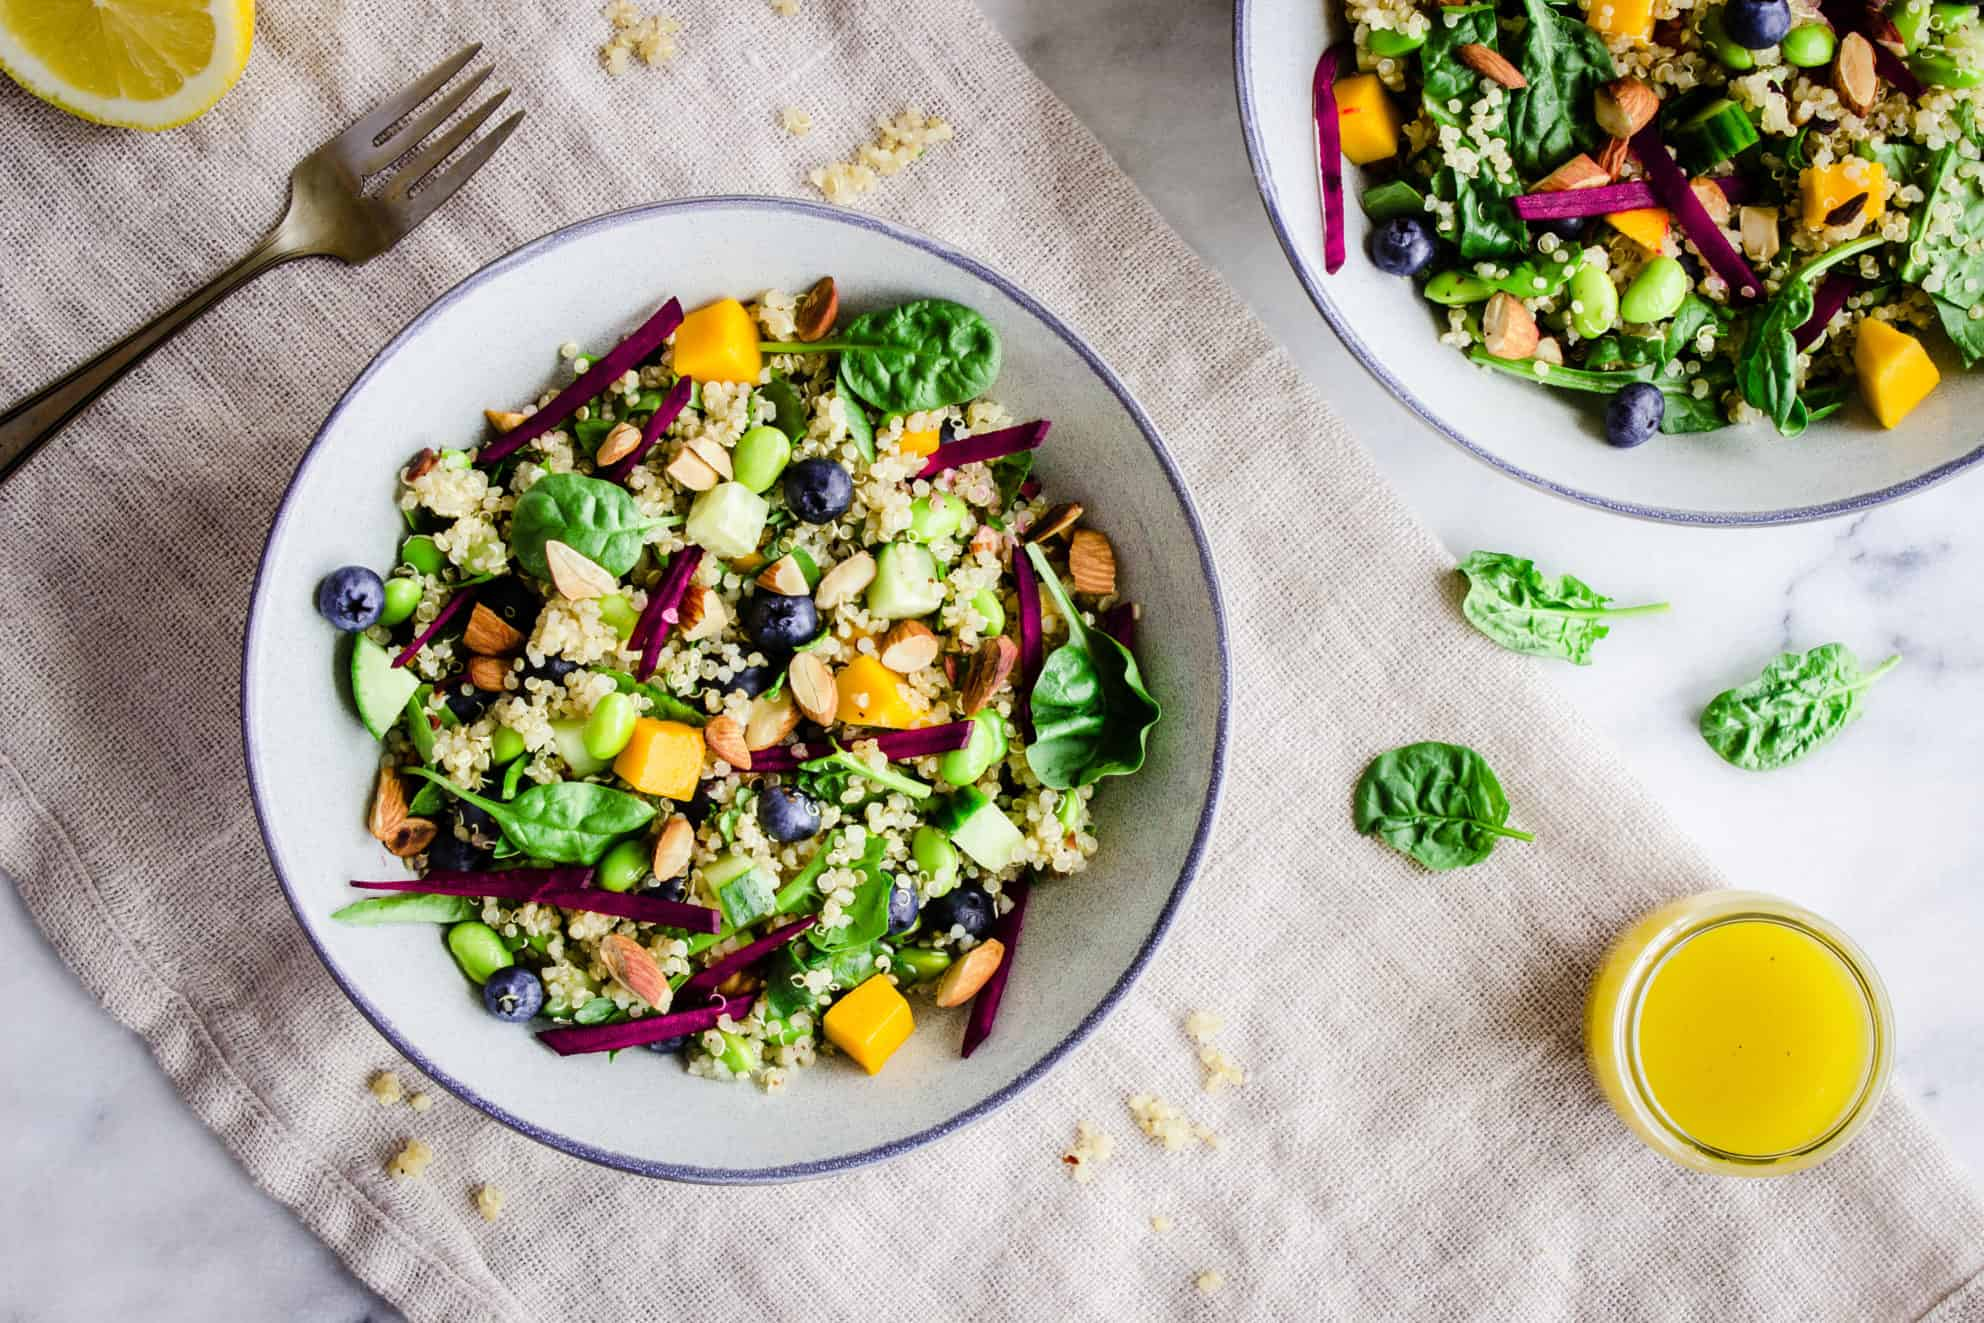 Overhead image of Quinoa Power Bowls, showing two grey bowls with quinoa, bright-coloured vegetables, fruit and toasted nuts in them, on a beige linen napkin accompanied by spinach leaves, quinoa, a lemon wedge and bright yellow vinaigrette.